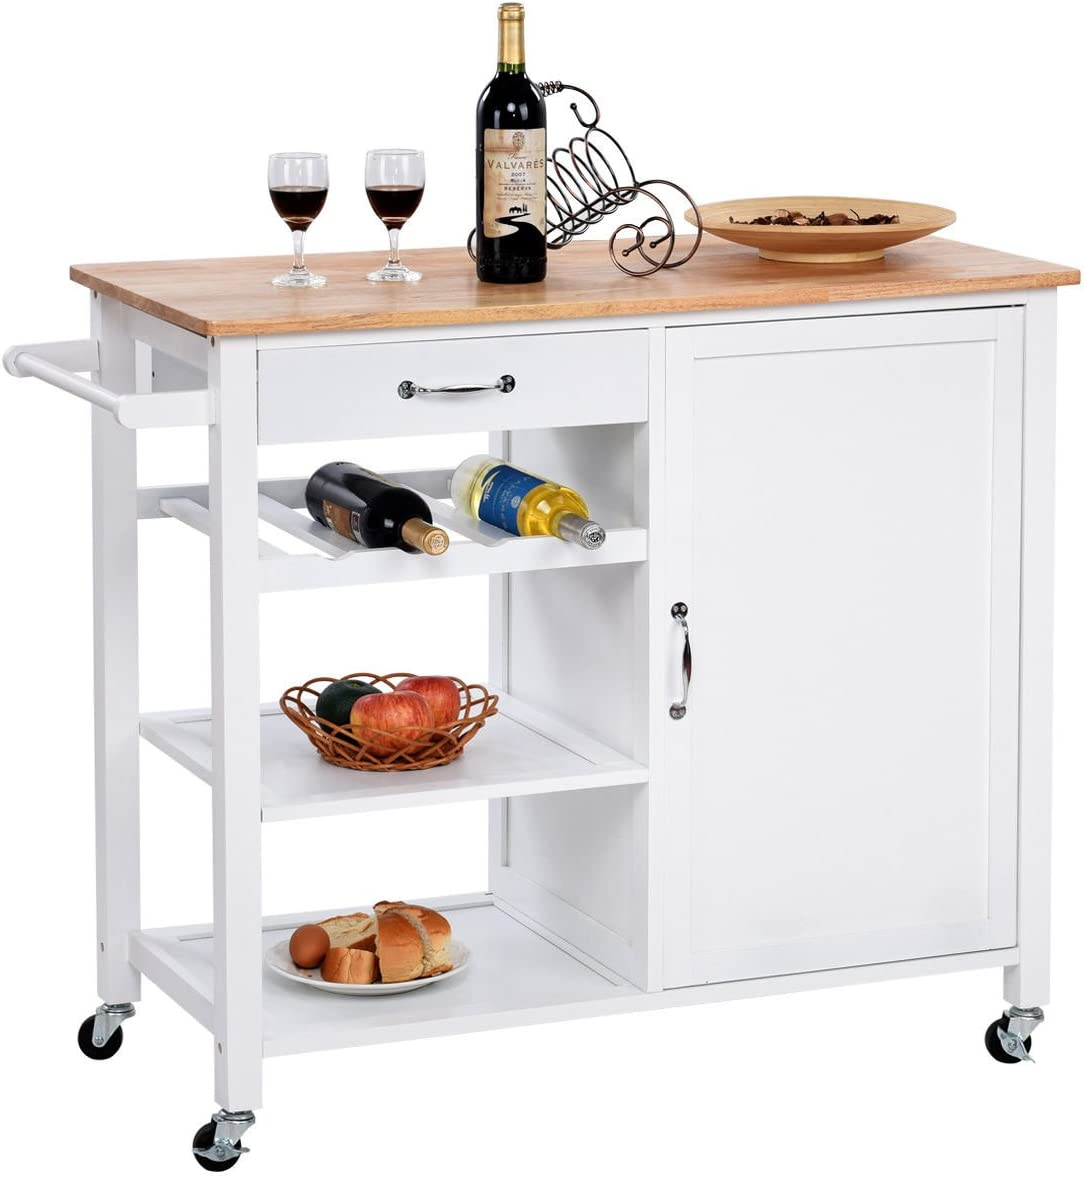 giantex 4 tier kitchen trolley cart     kitchen islands  u0026 carts   amazon com  rh   amazon com